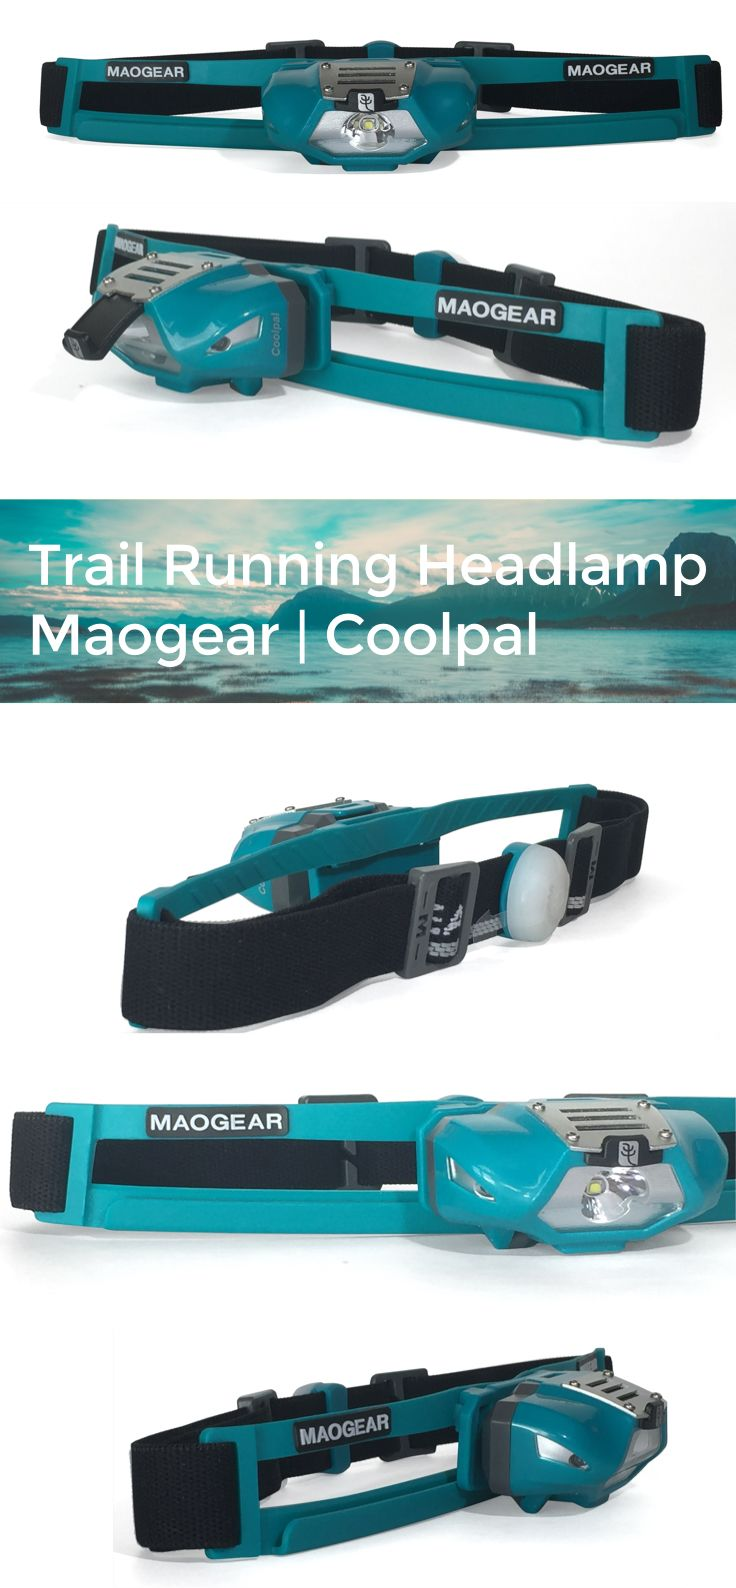 Trail Running Headlamp | 140 Lumens, AAA battery, sweatband, sides and back security flashing red LED.